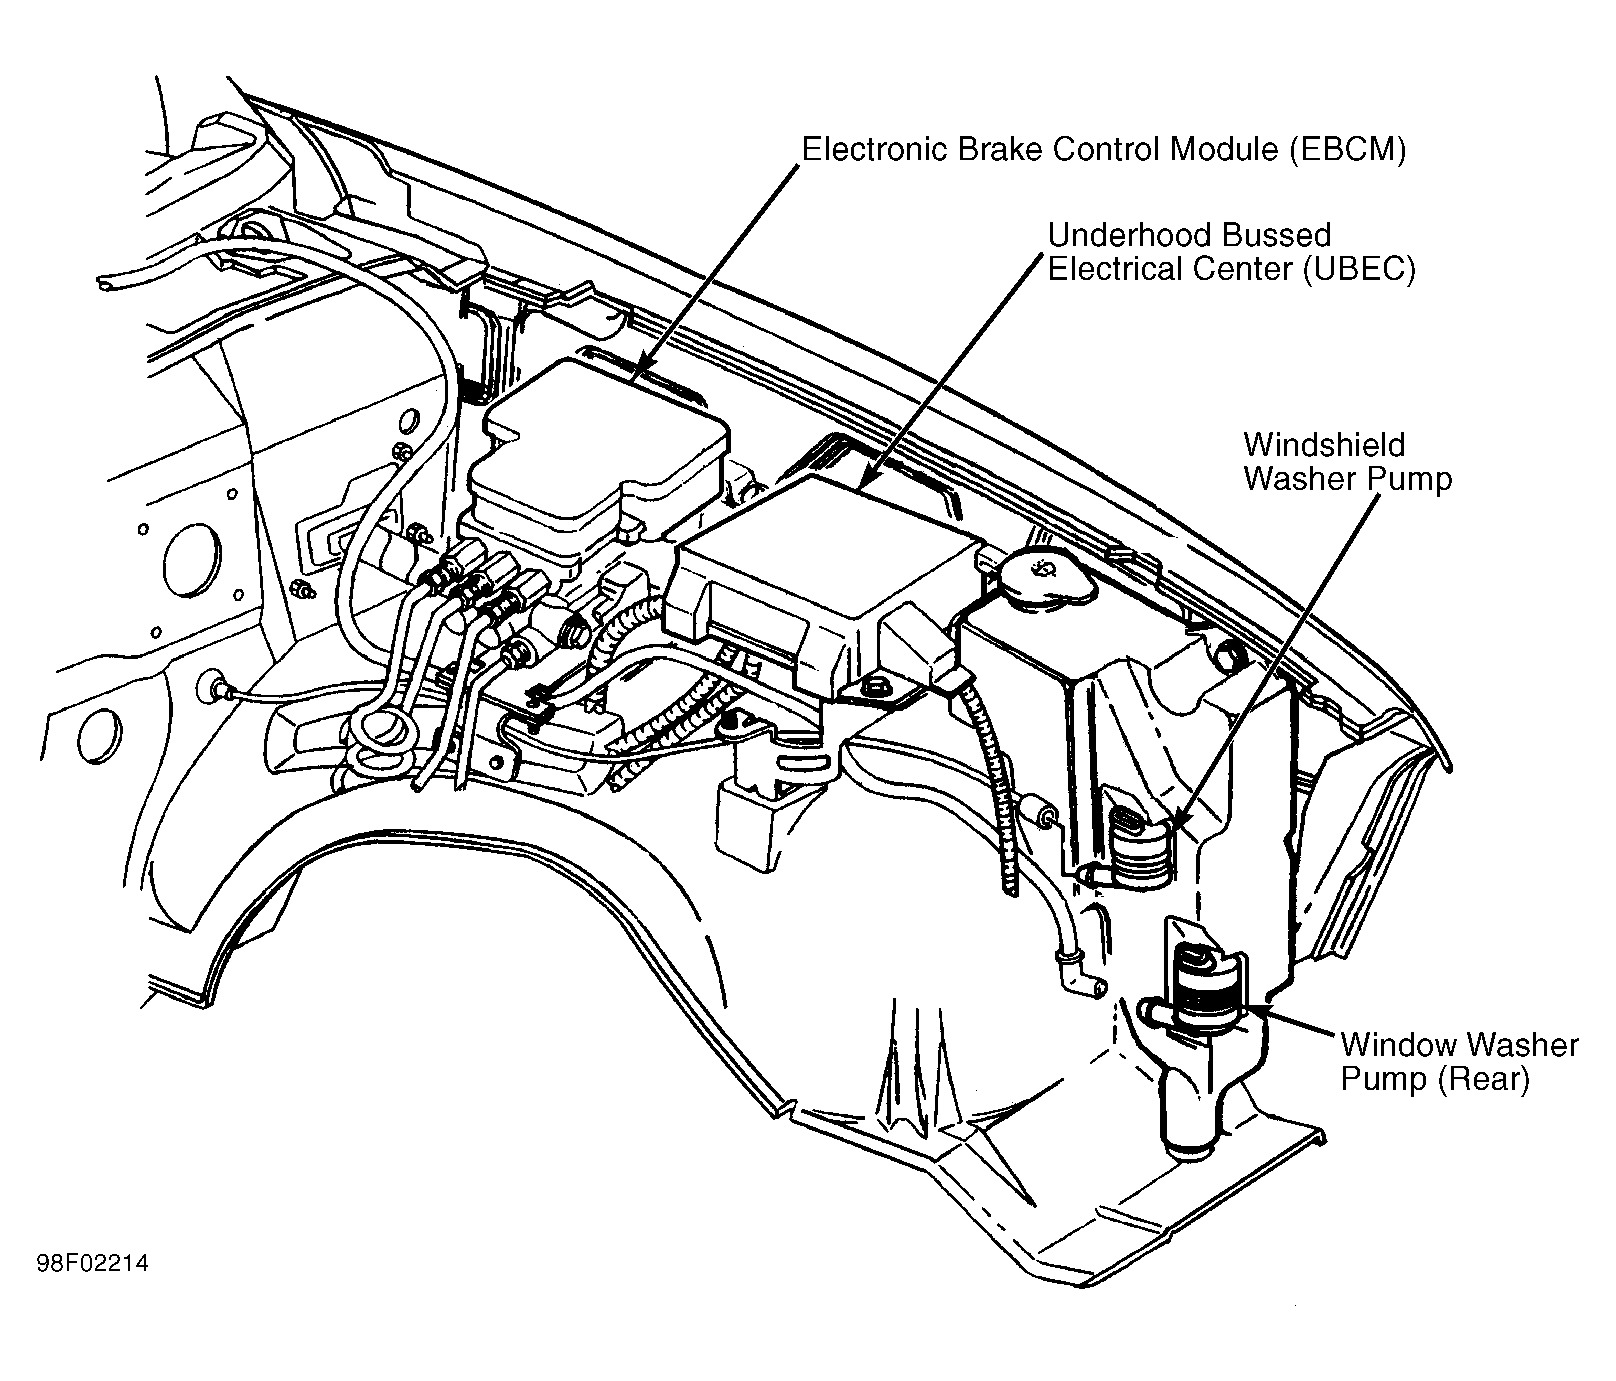 hight resolution of 1998 gmc sonoma fuse box location passenger power window will not 1989 gmc sierra fuse box